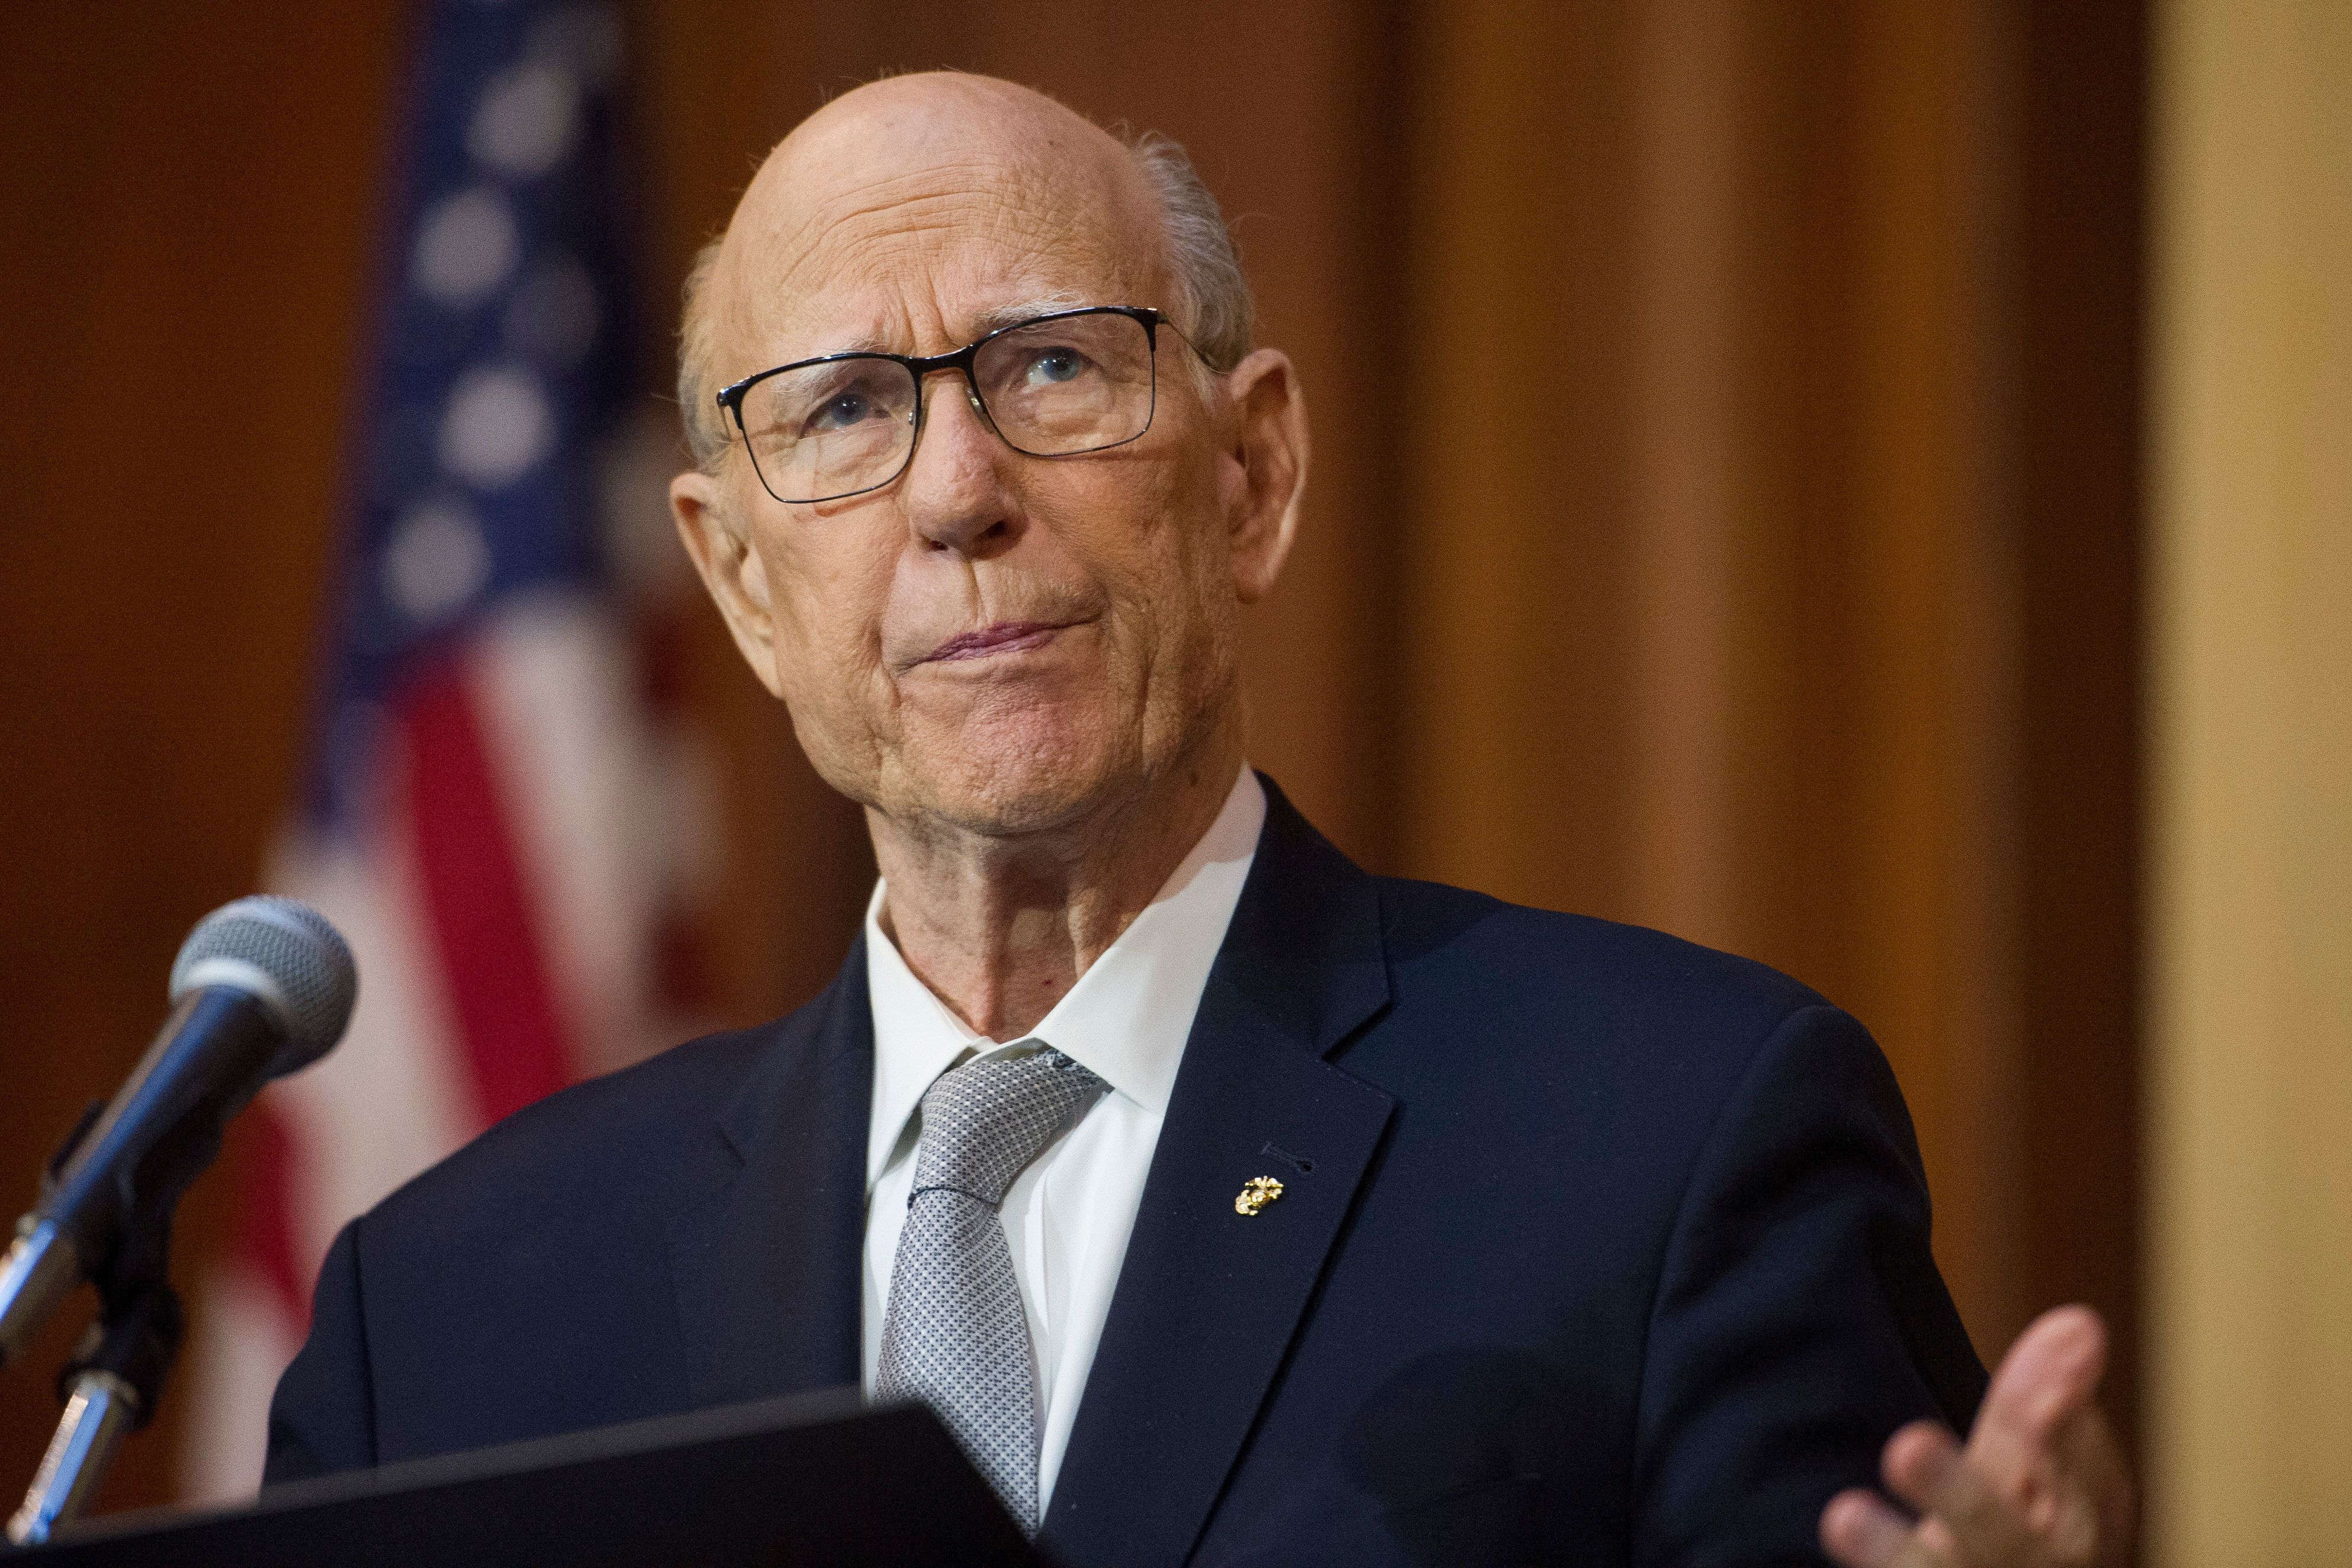 FILE - In this Dec. 11, 2018 file photo, Senate Agriculture Committe Chairman Pat Roberts, R-Kansas, speaks during the signing of an order withdrawing federal protections for countless waterways and wetlands, at EPA headquarters in Washington. The veteran Republican Senator is preparing to announce Friday whether he will seek re-election in 2020. (AP Photo/Cliff Owen, File)